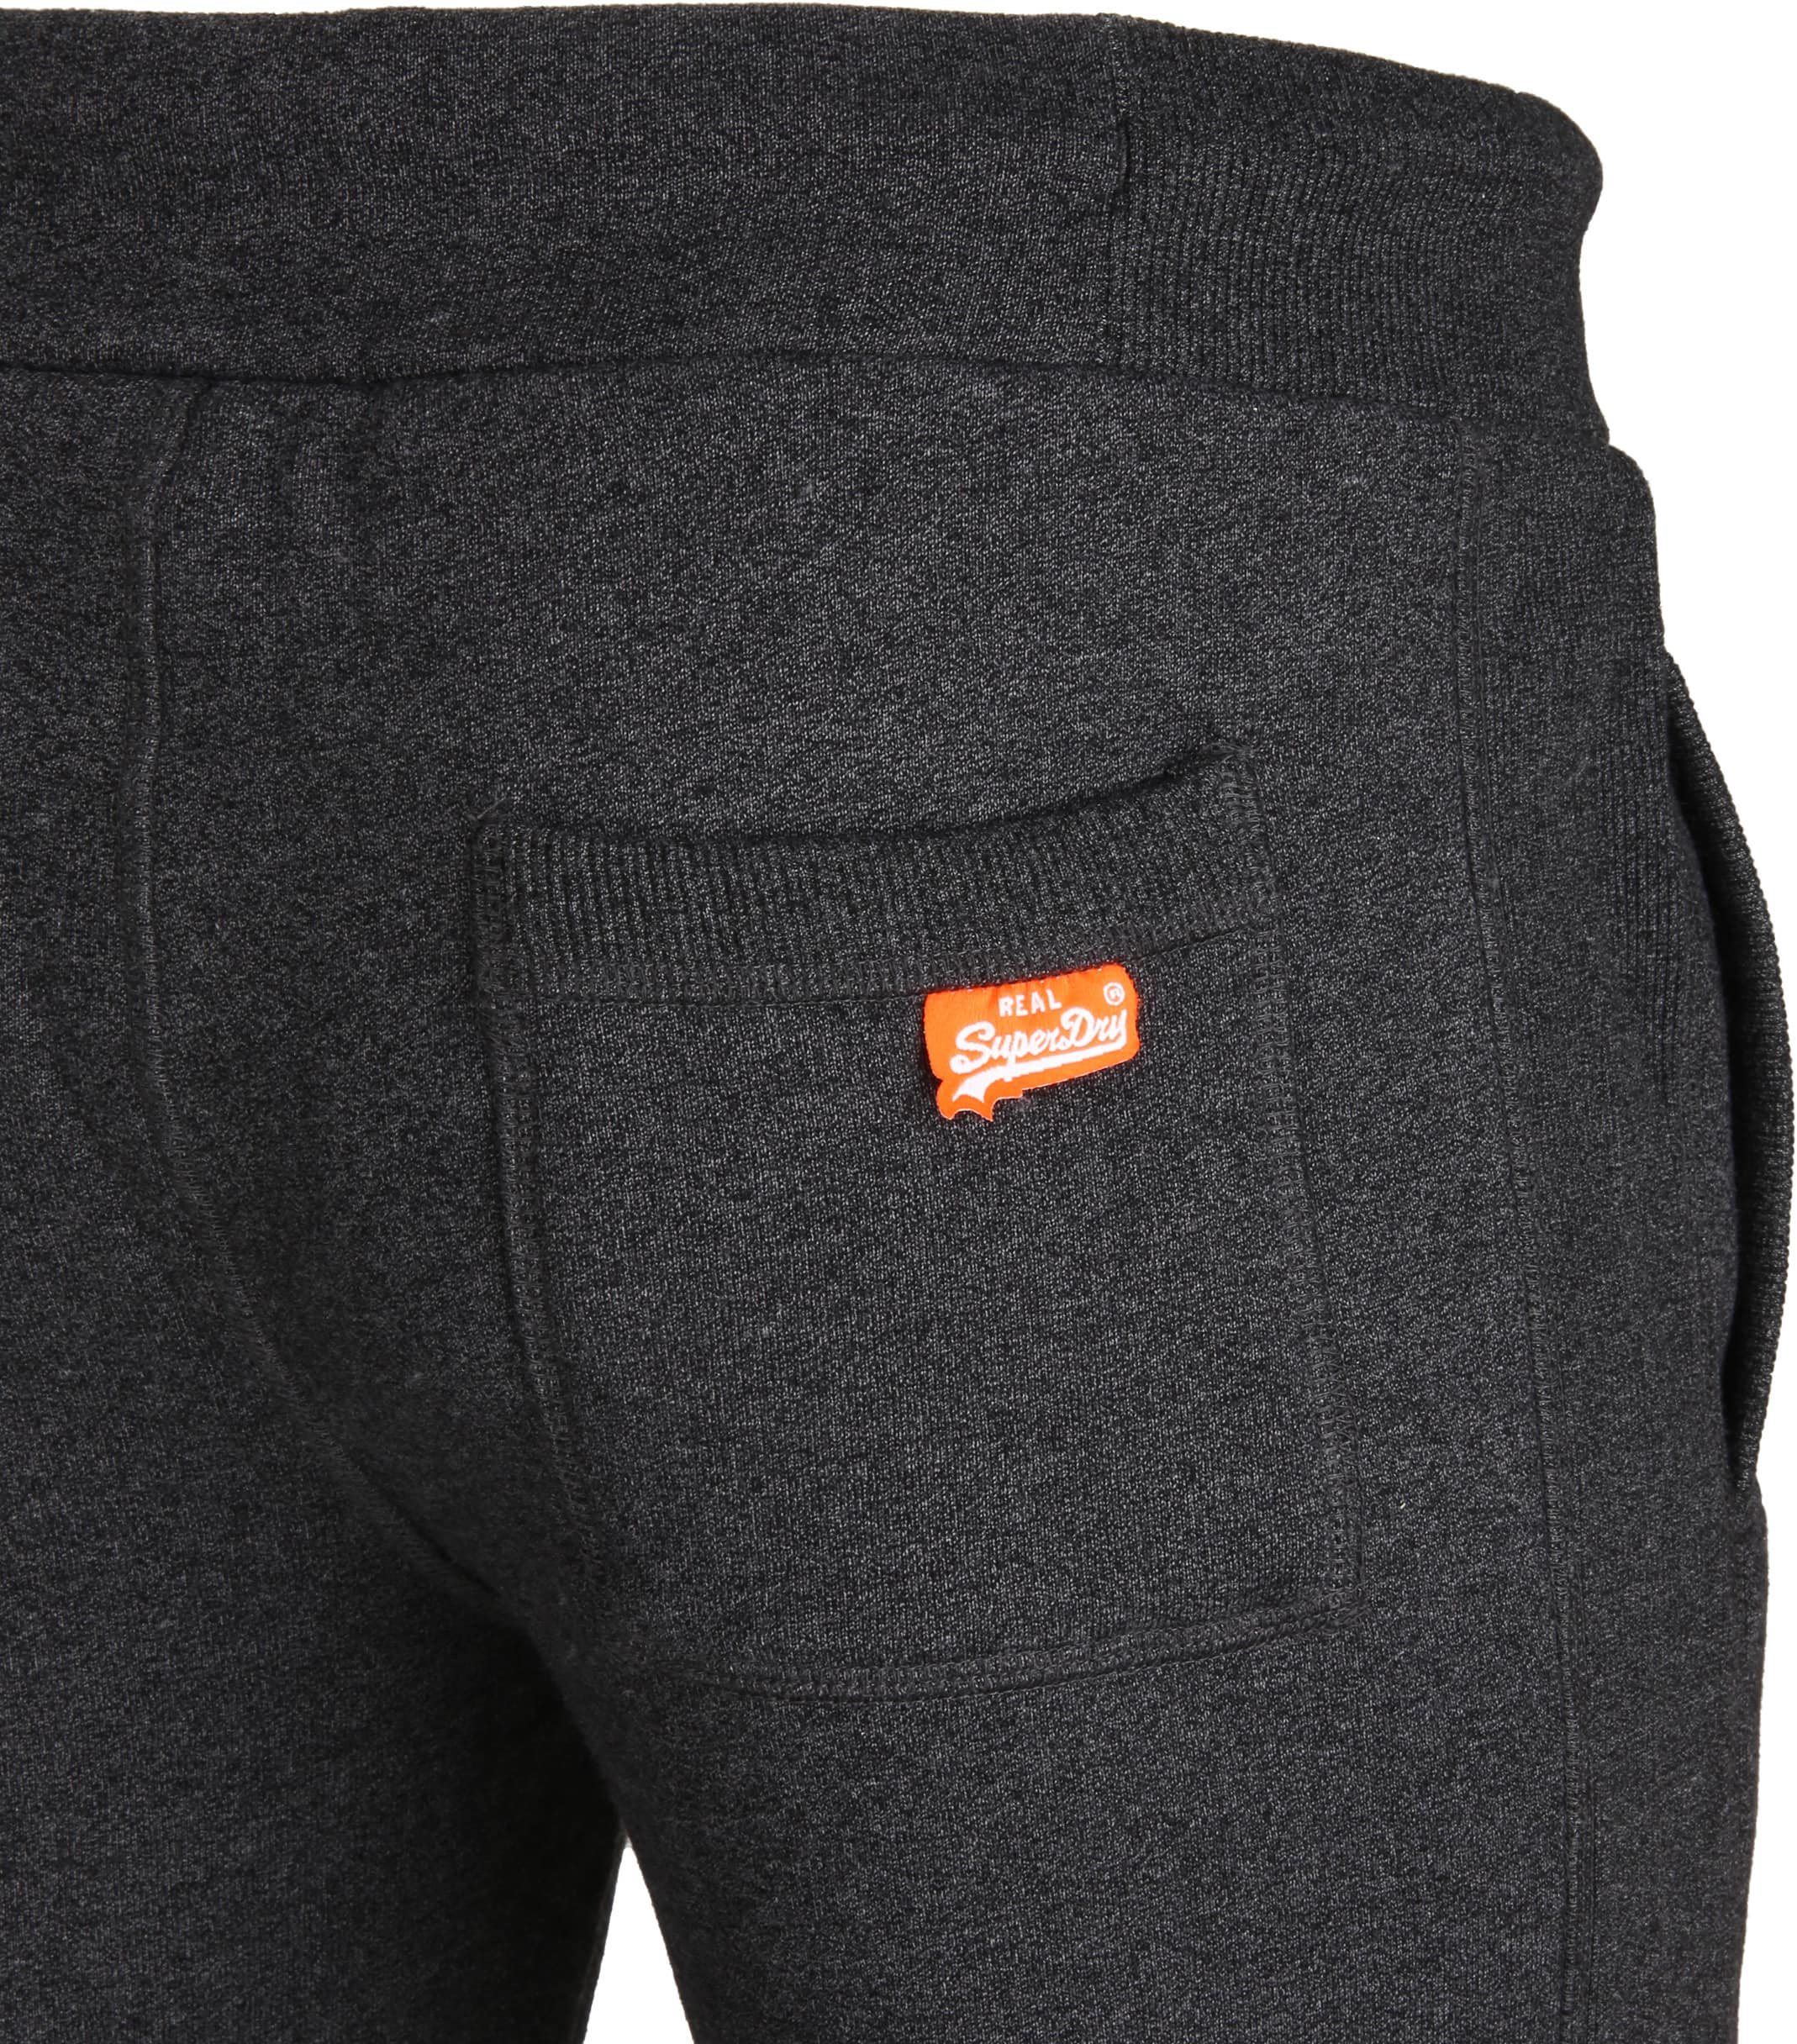 Superdry Sweatpants Zwart foto 1